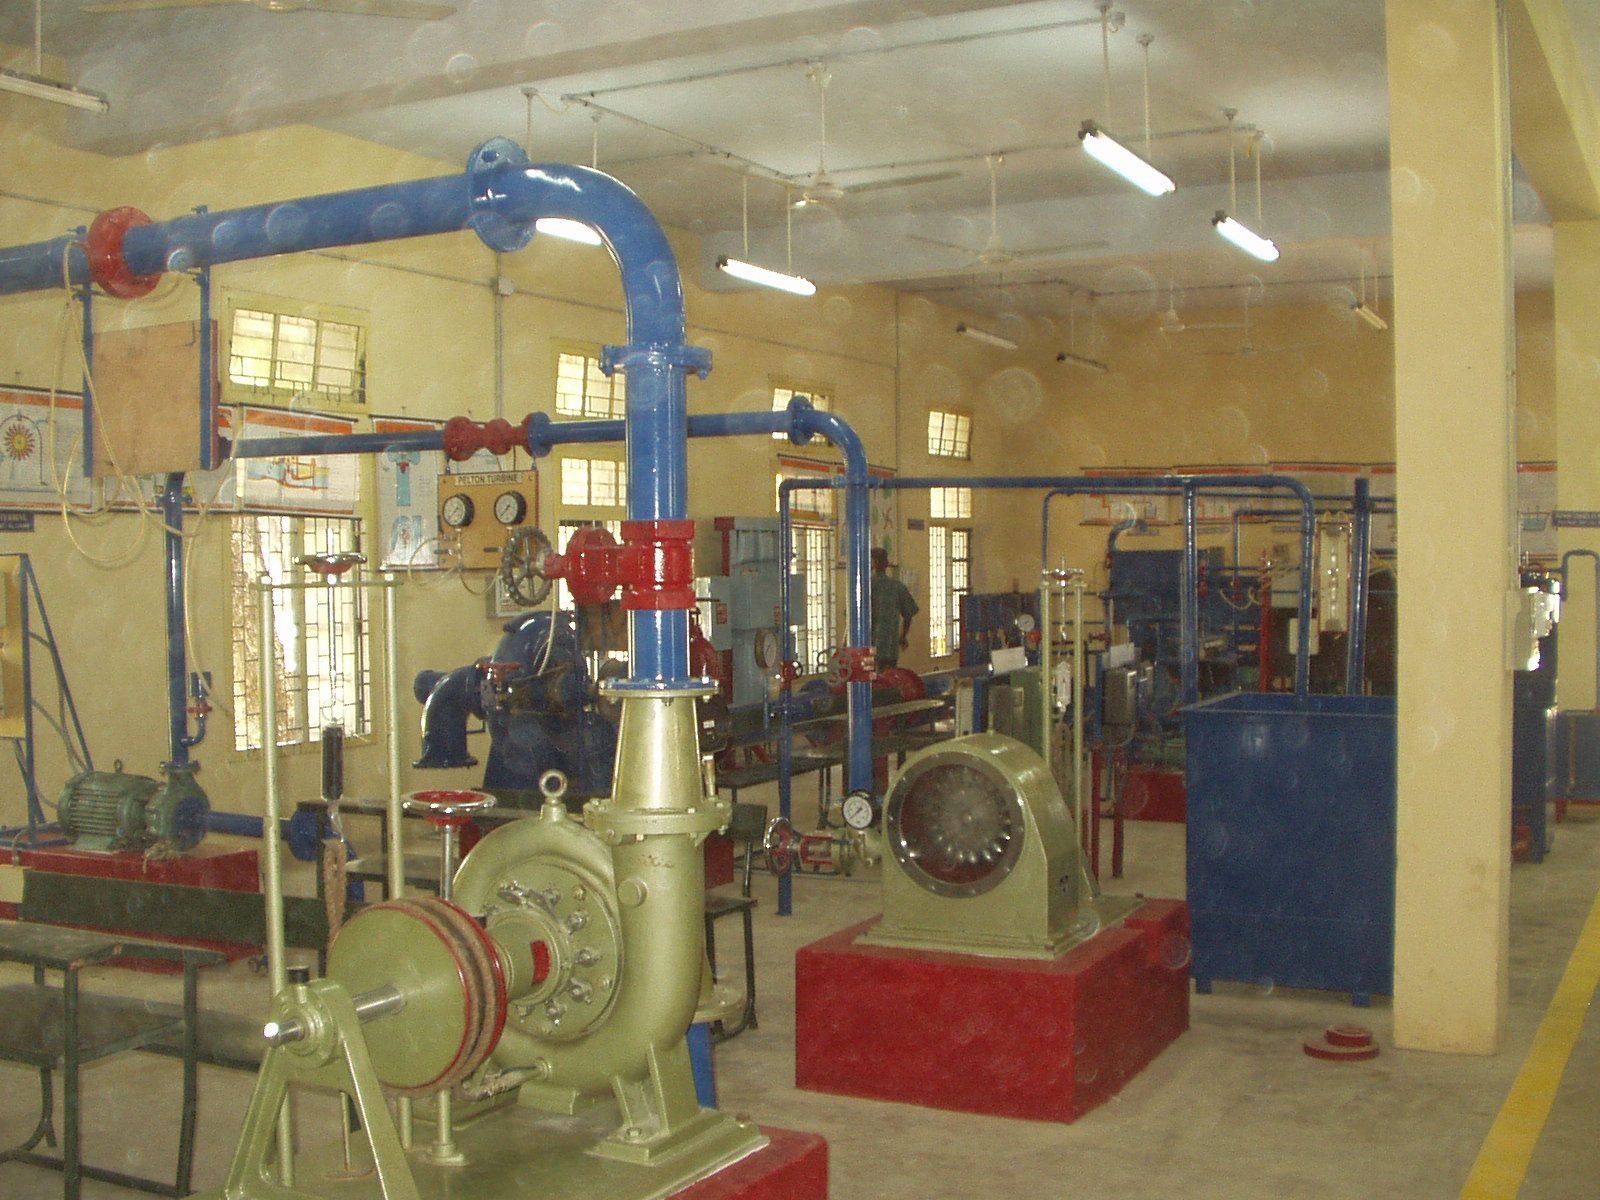 fluid mechanics lab Find here fluid mechanics lab manufacturers, suppliers & exporters in india get contact details & address of companies manufacturing and supplying fluid mechanics lab, fluid mechanics.